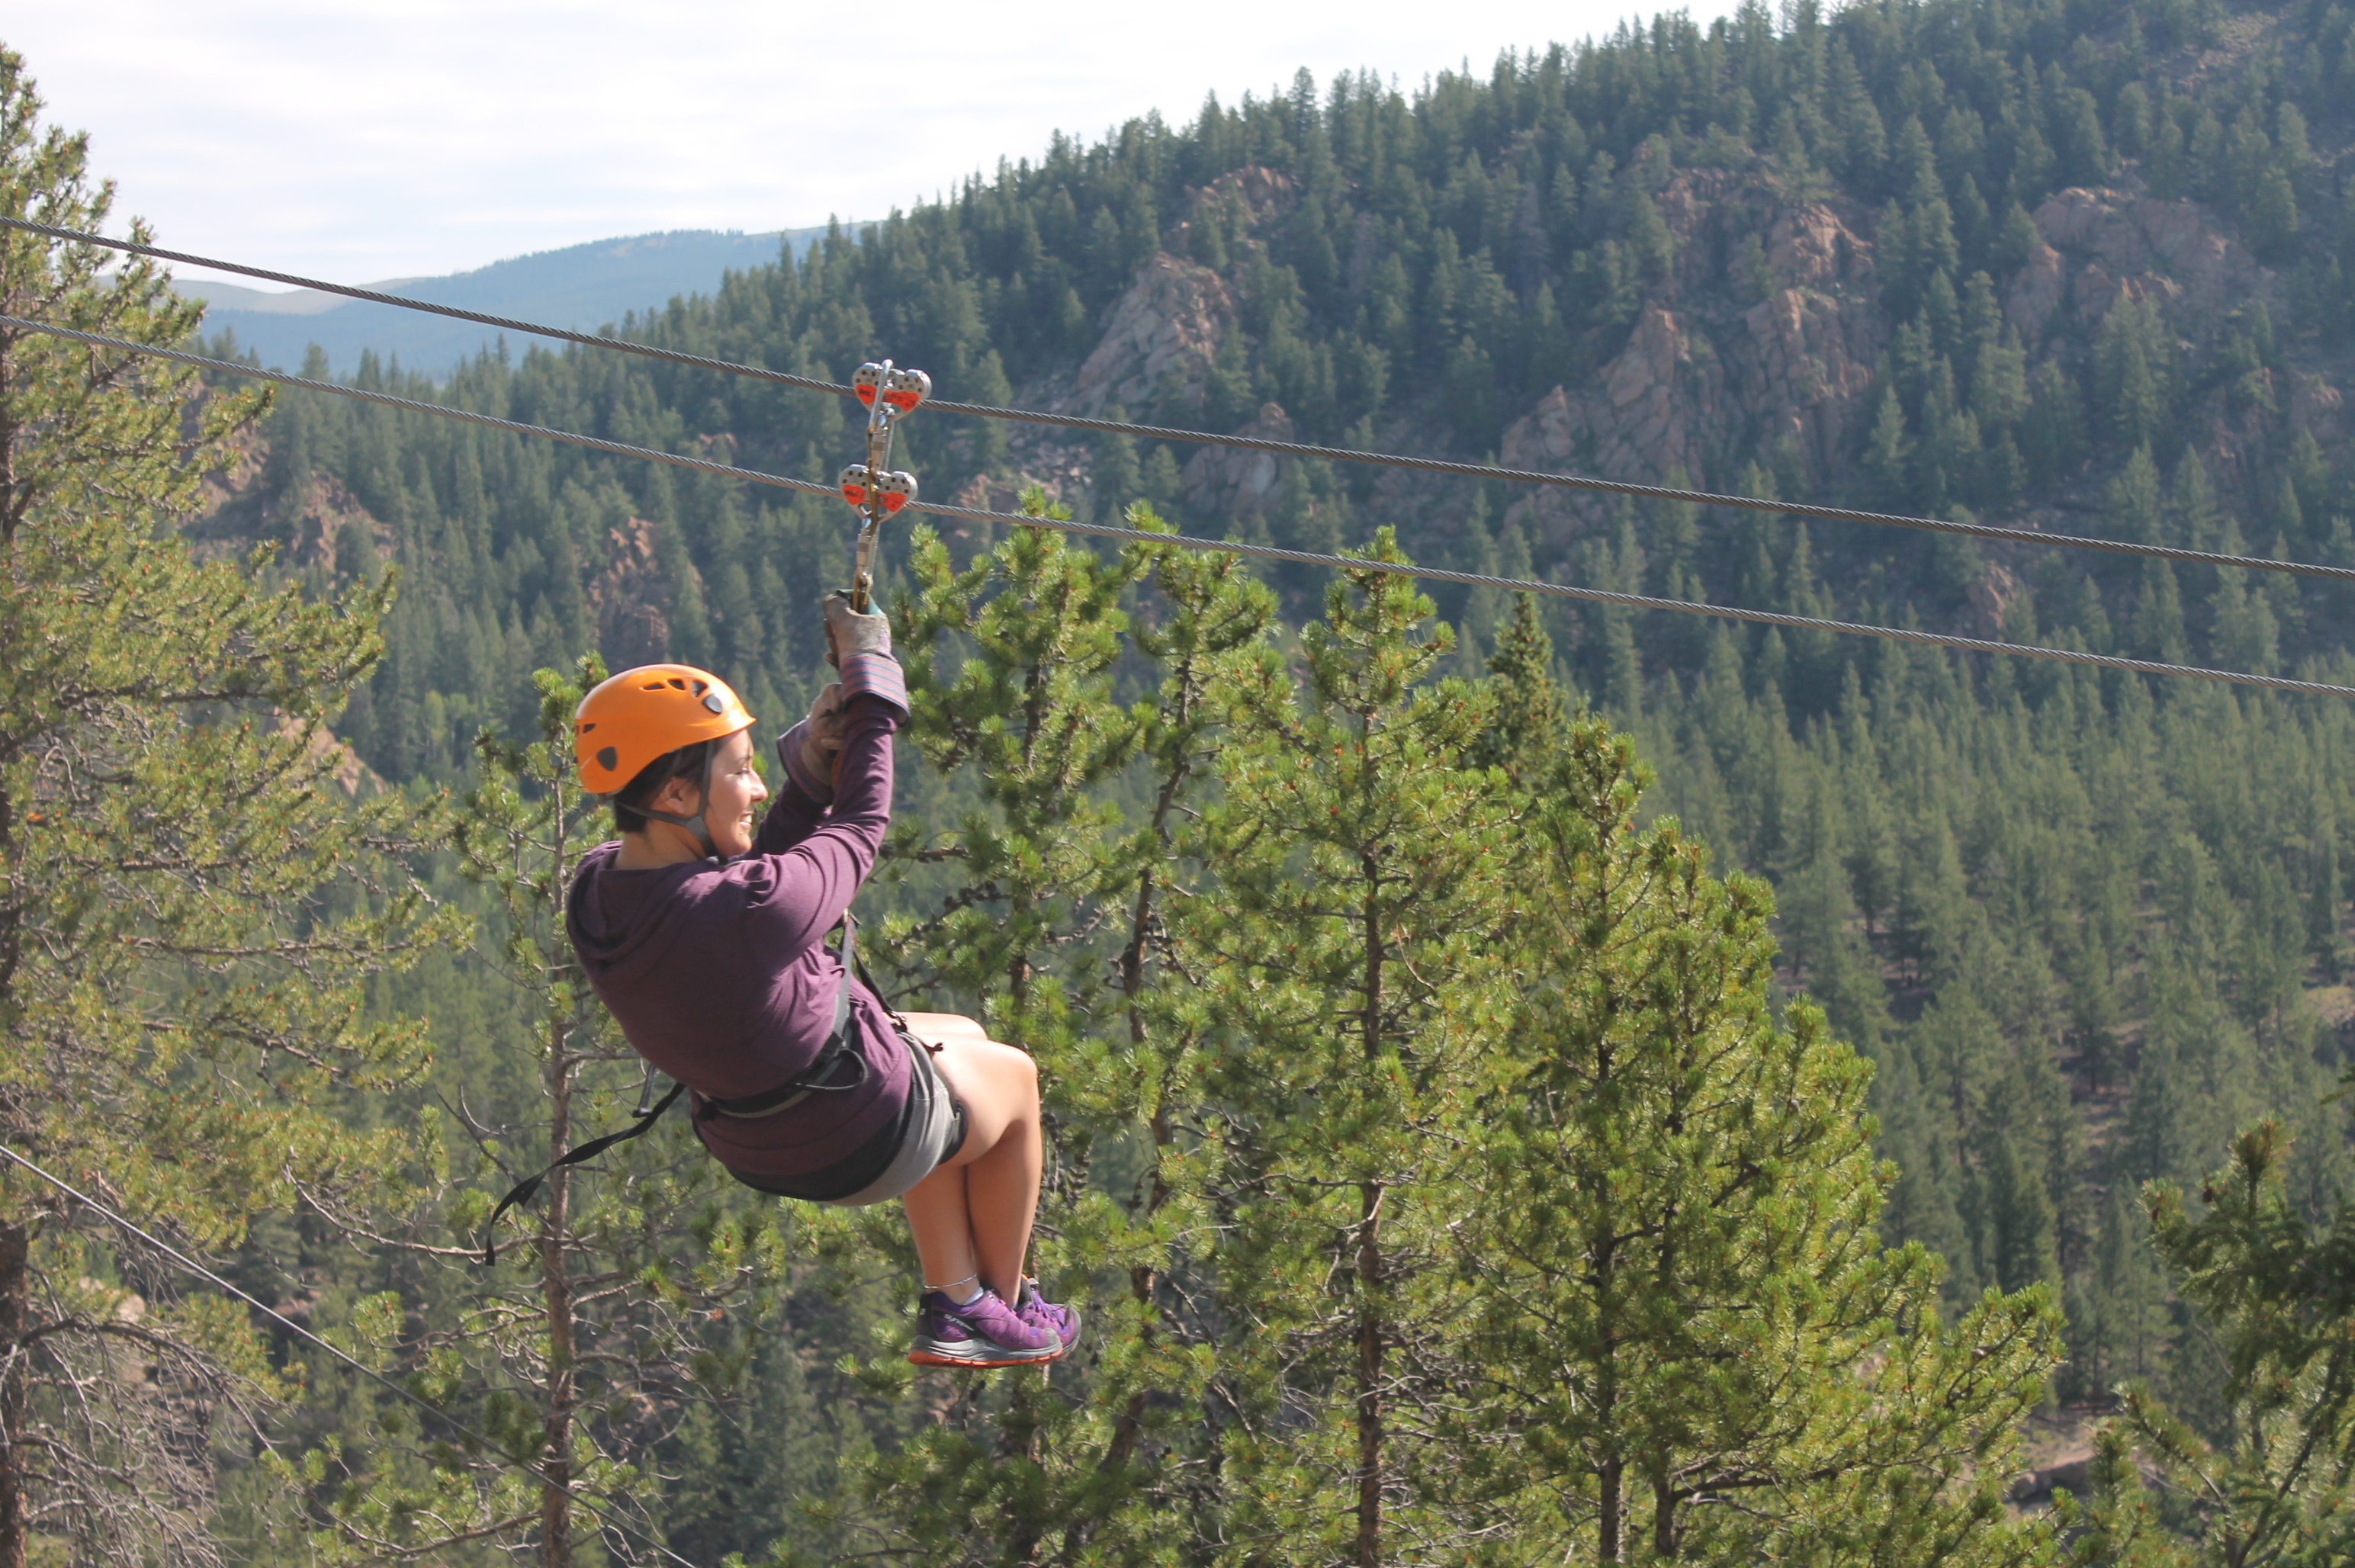 Ziplining in Buena Vista Colorado